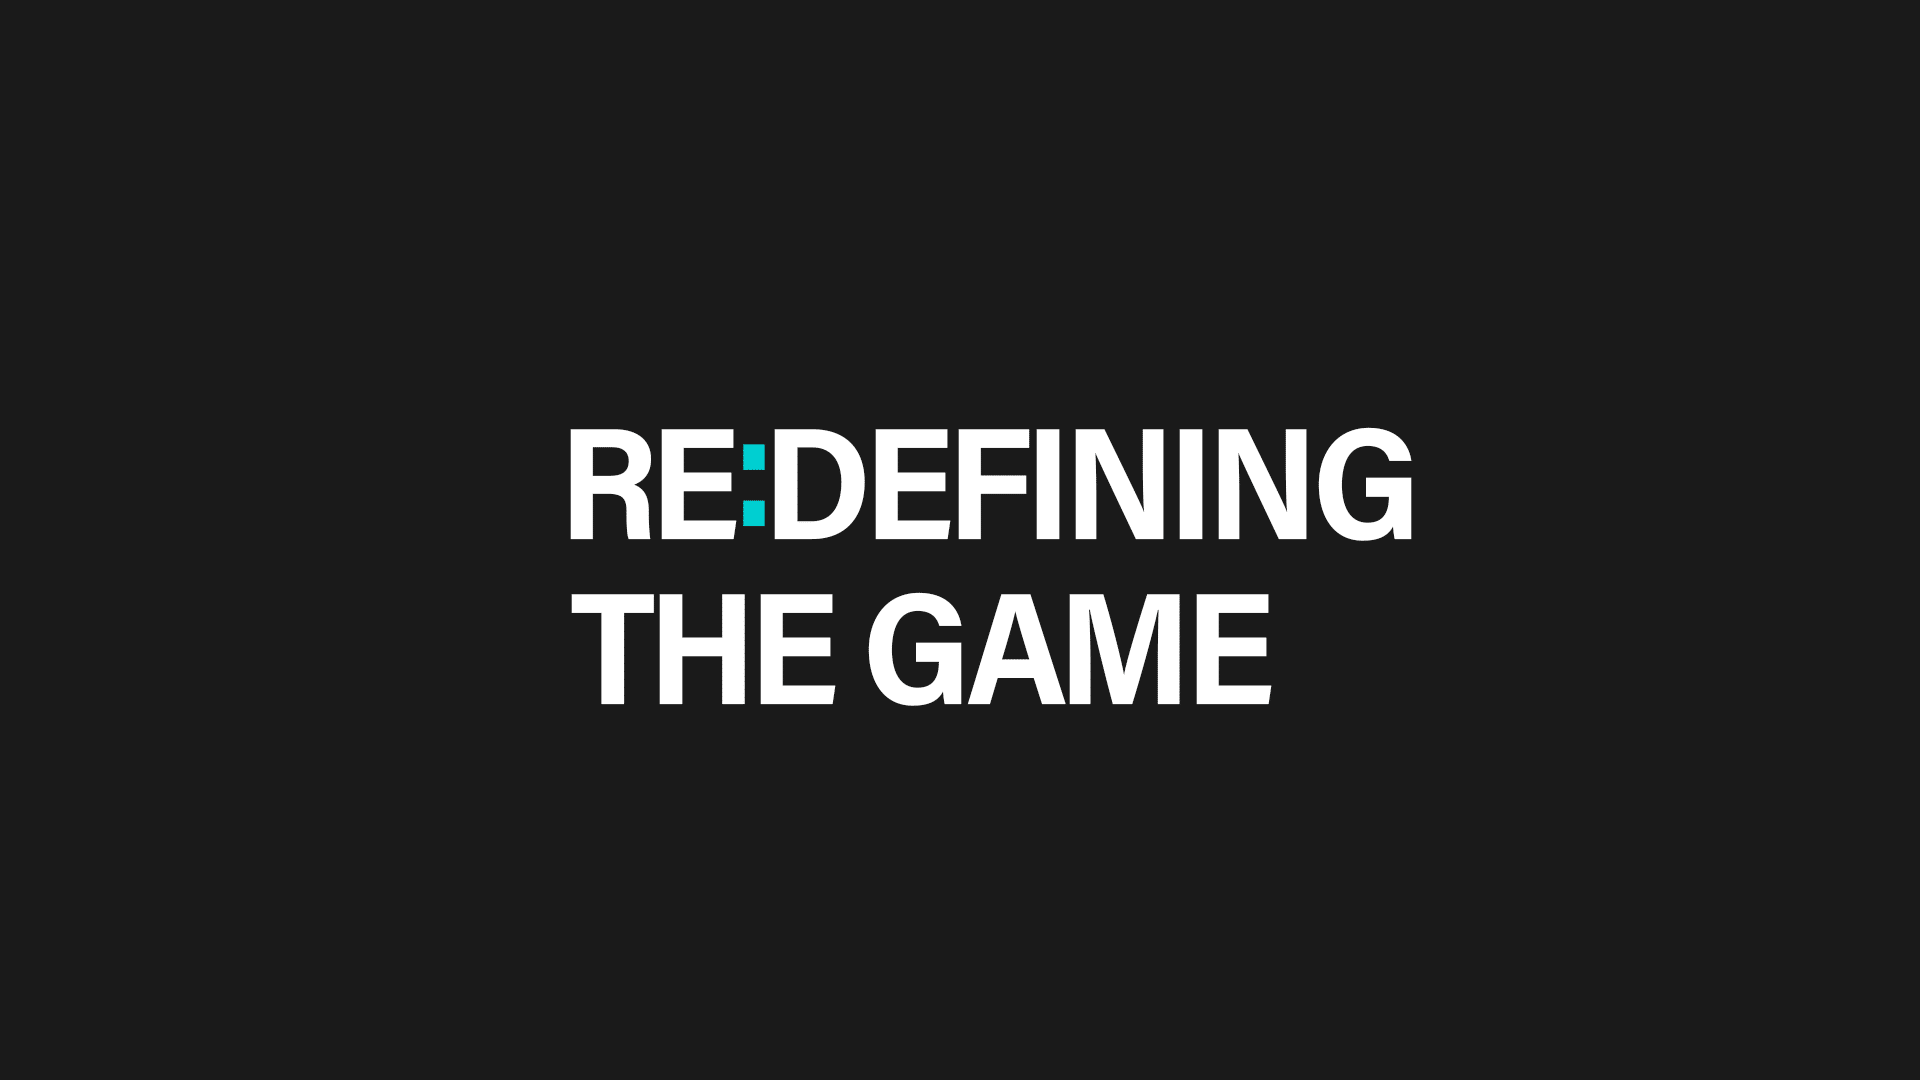 re-defining the game